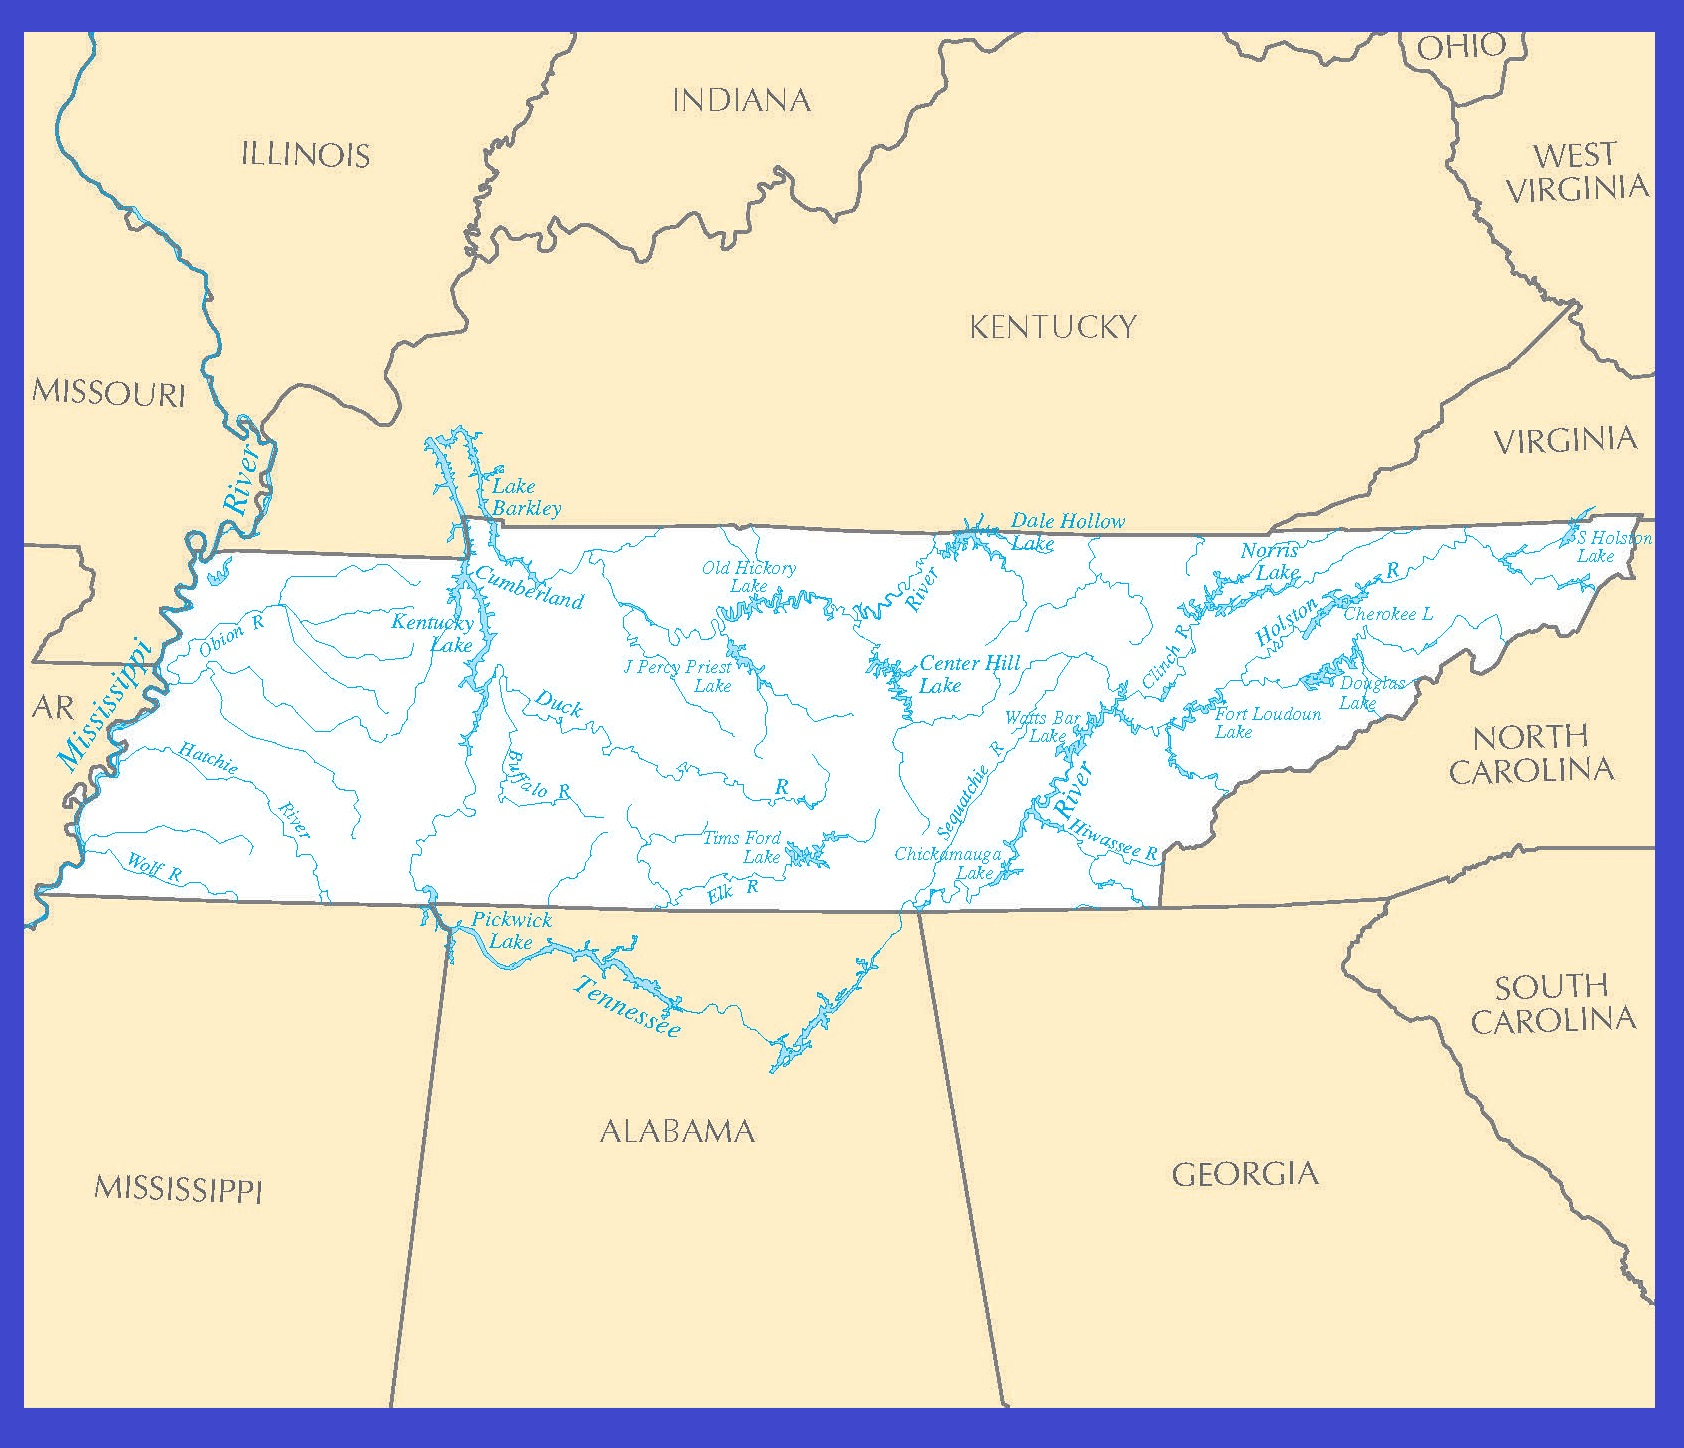 Tennessee Rivers Map | Large Printable High Resolution and Standard Map